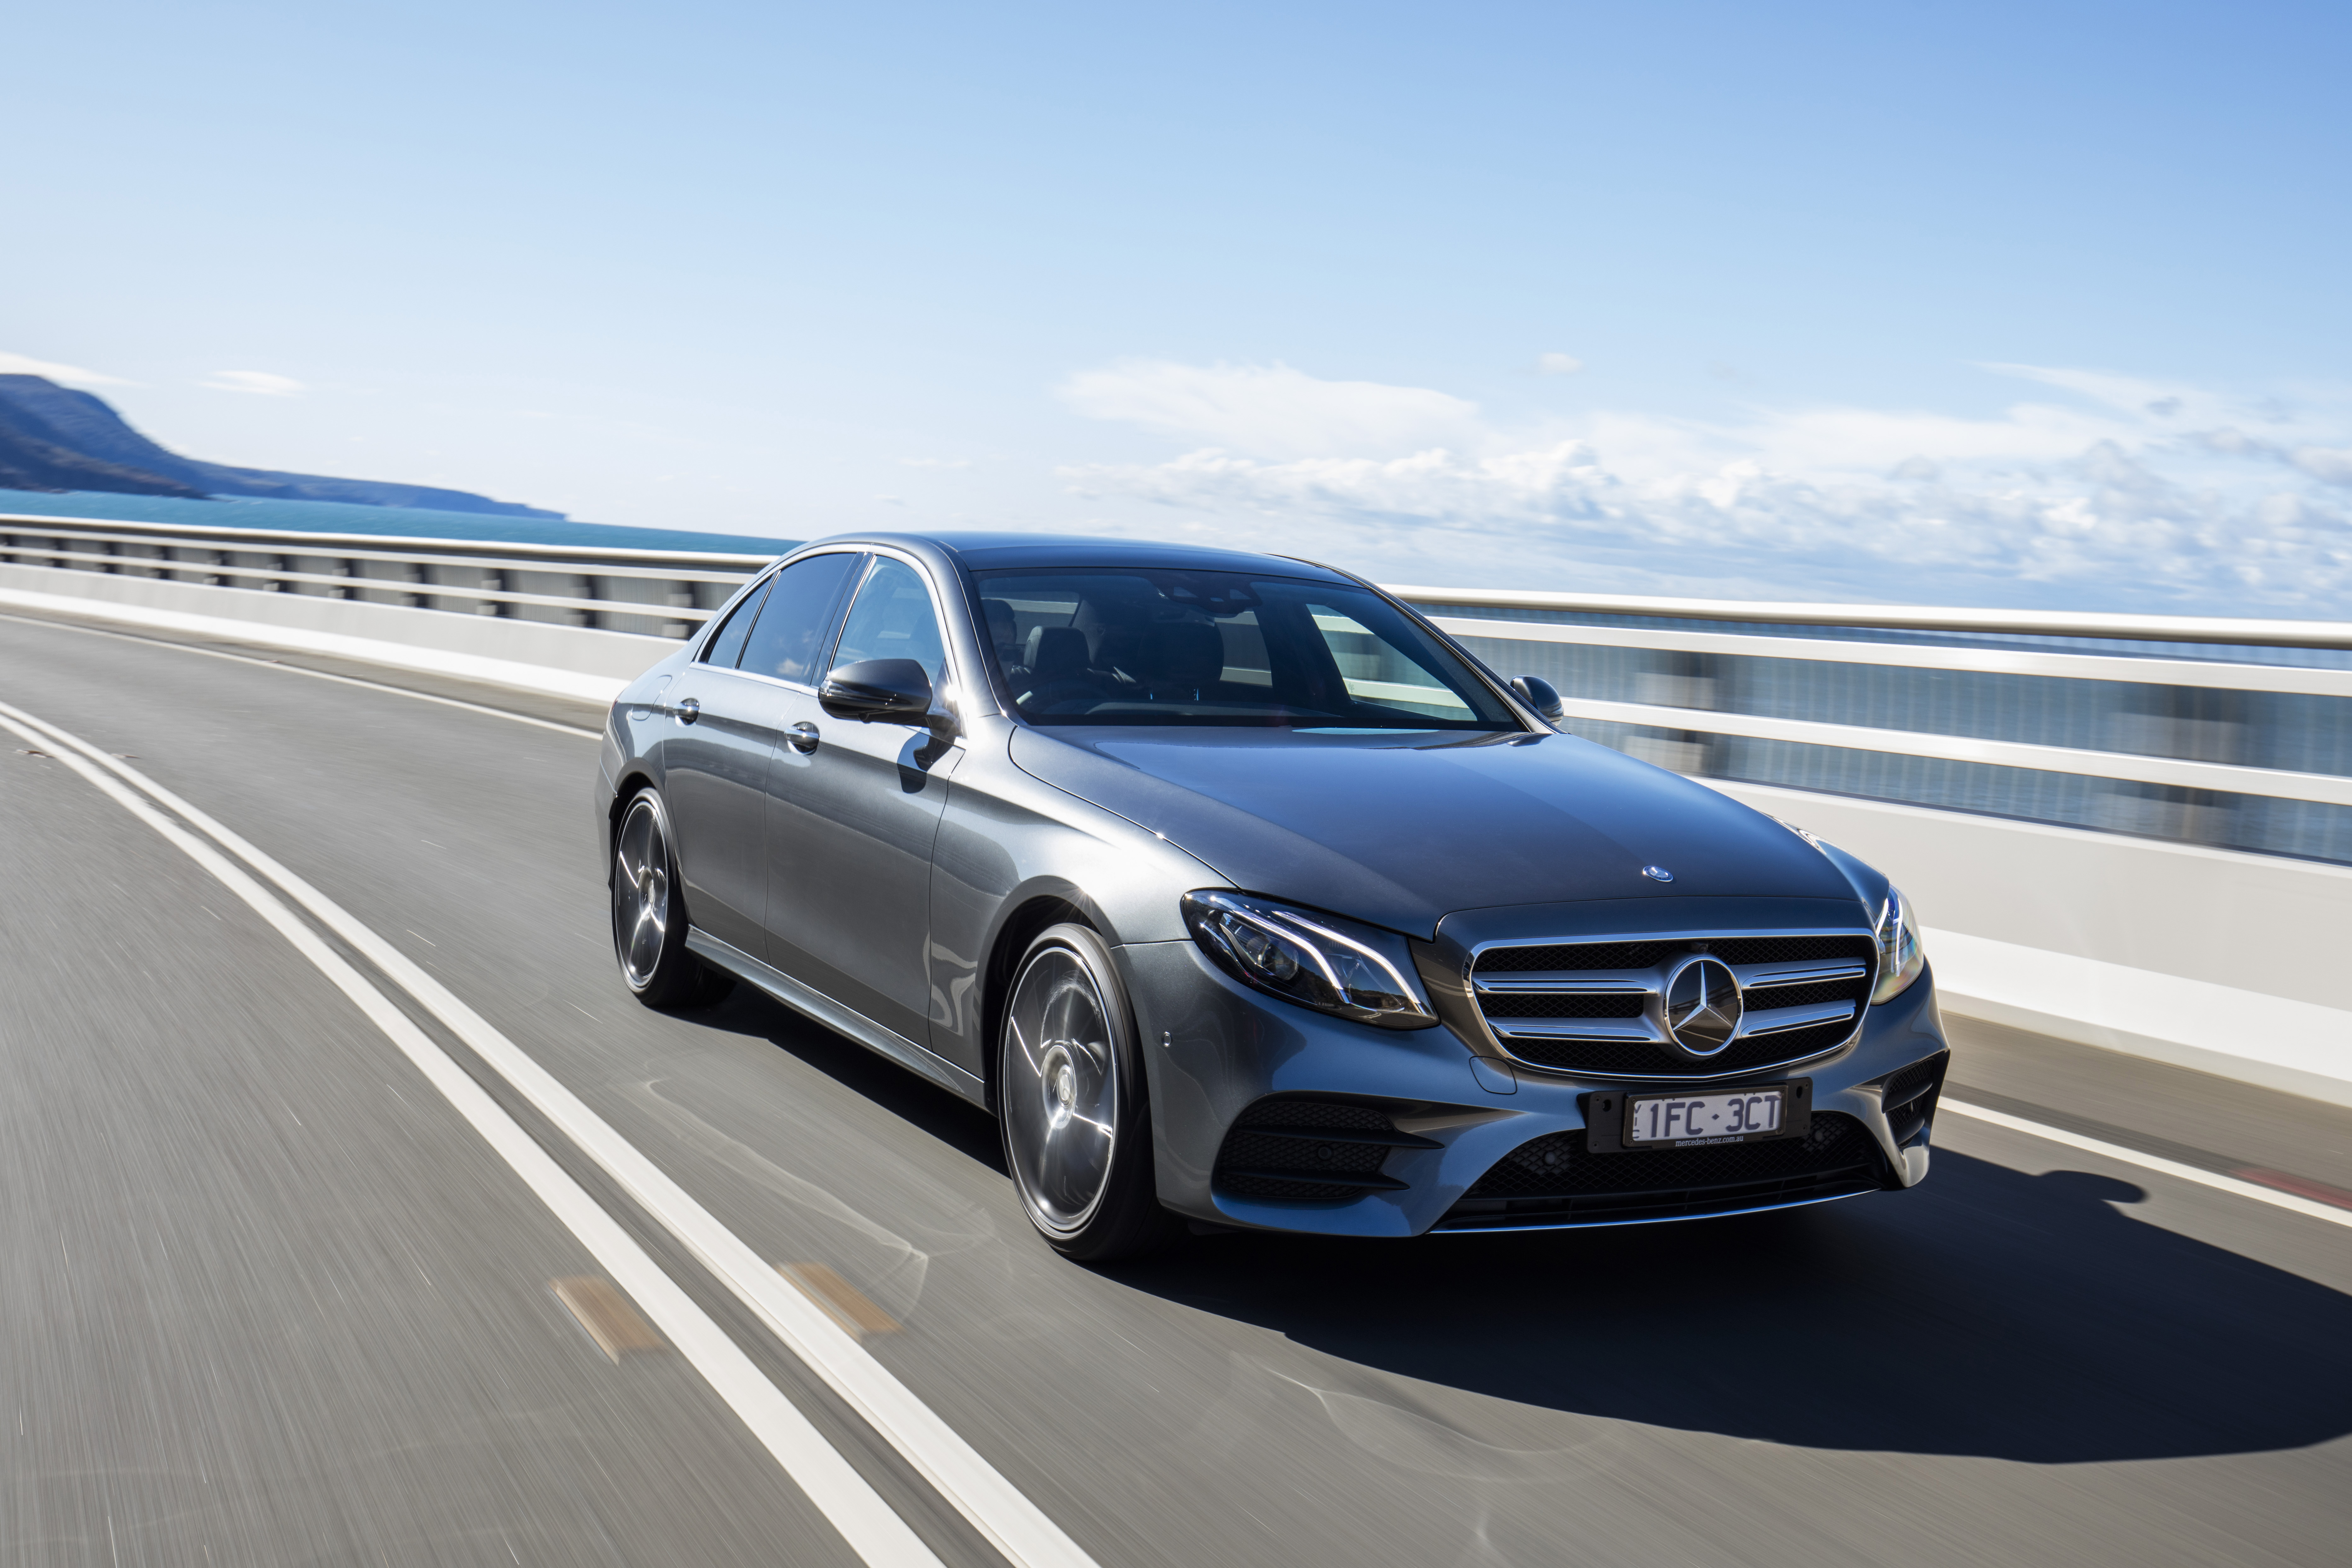 The Mercedes-Benz E-Class features some of the most advanced Driverless tech on the market.